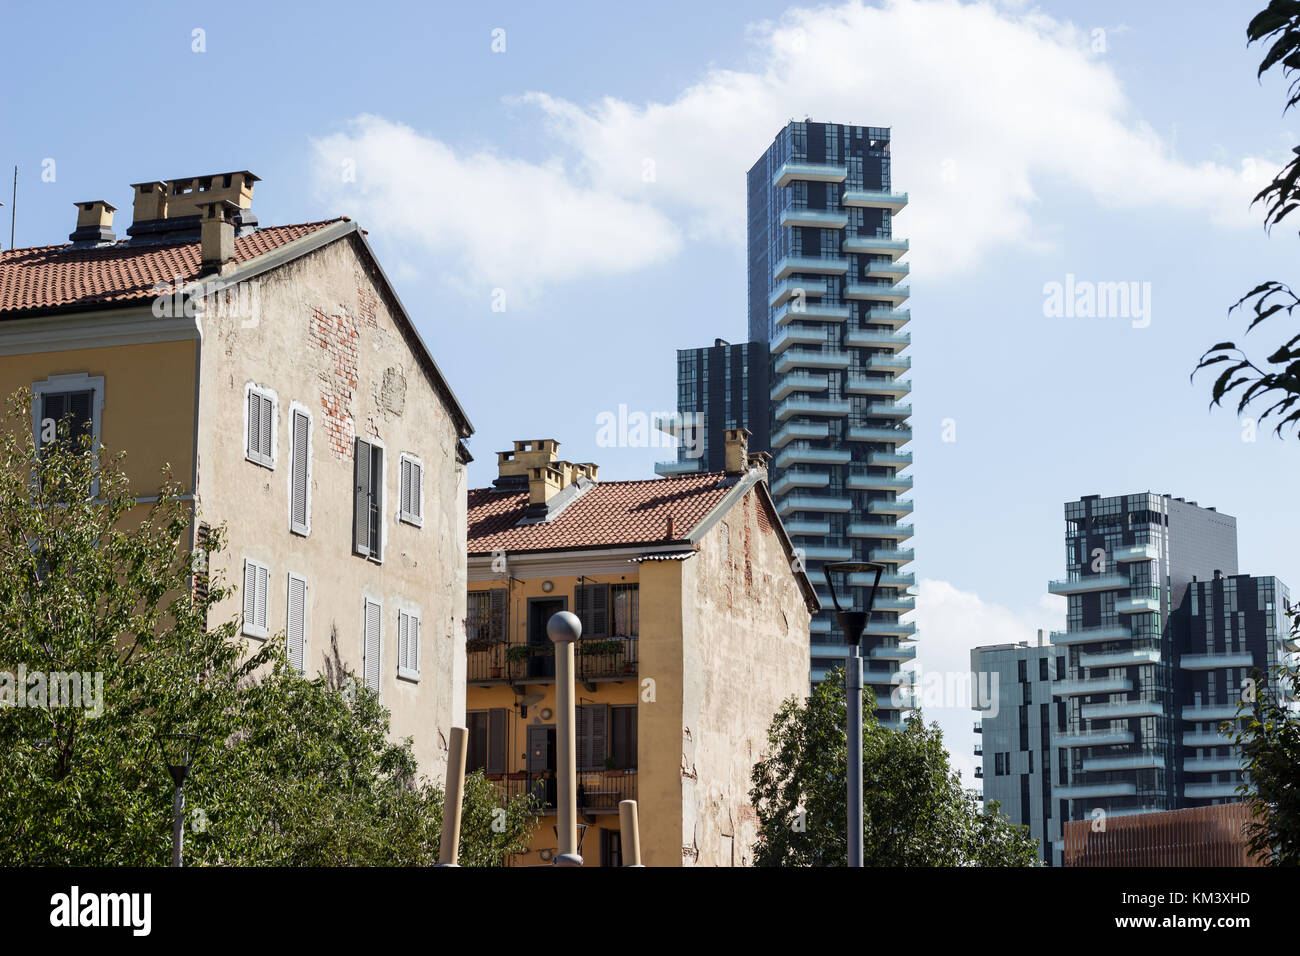 Contrast between contemporary and traditional architecture in the Isola district, Milan. Stock Photo